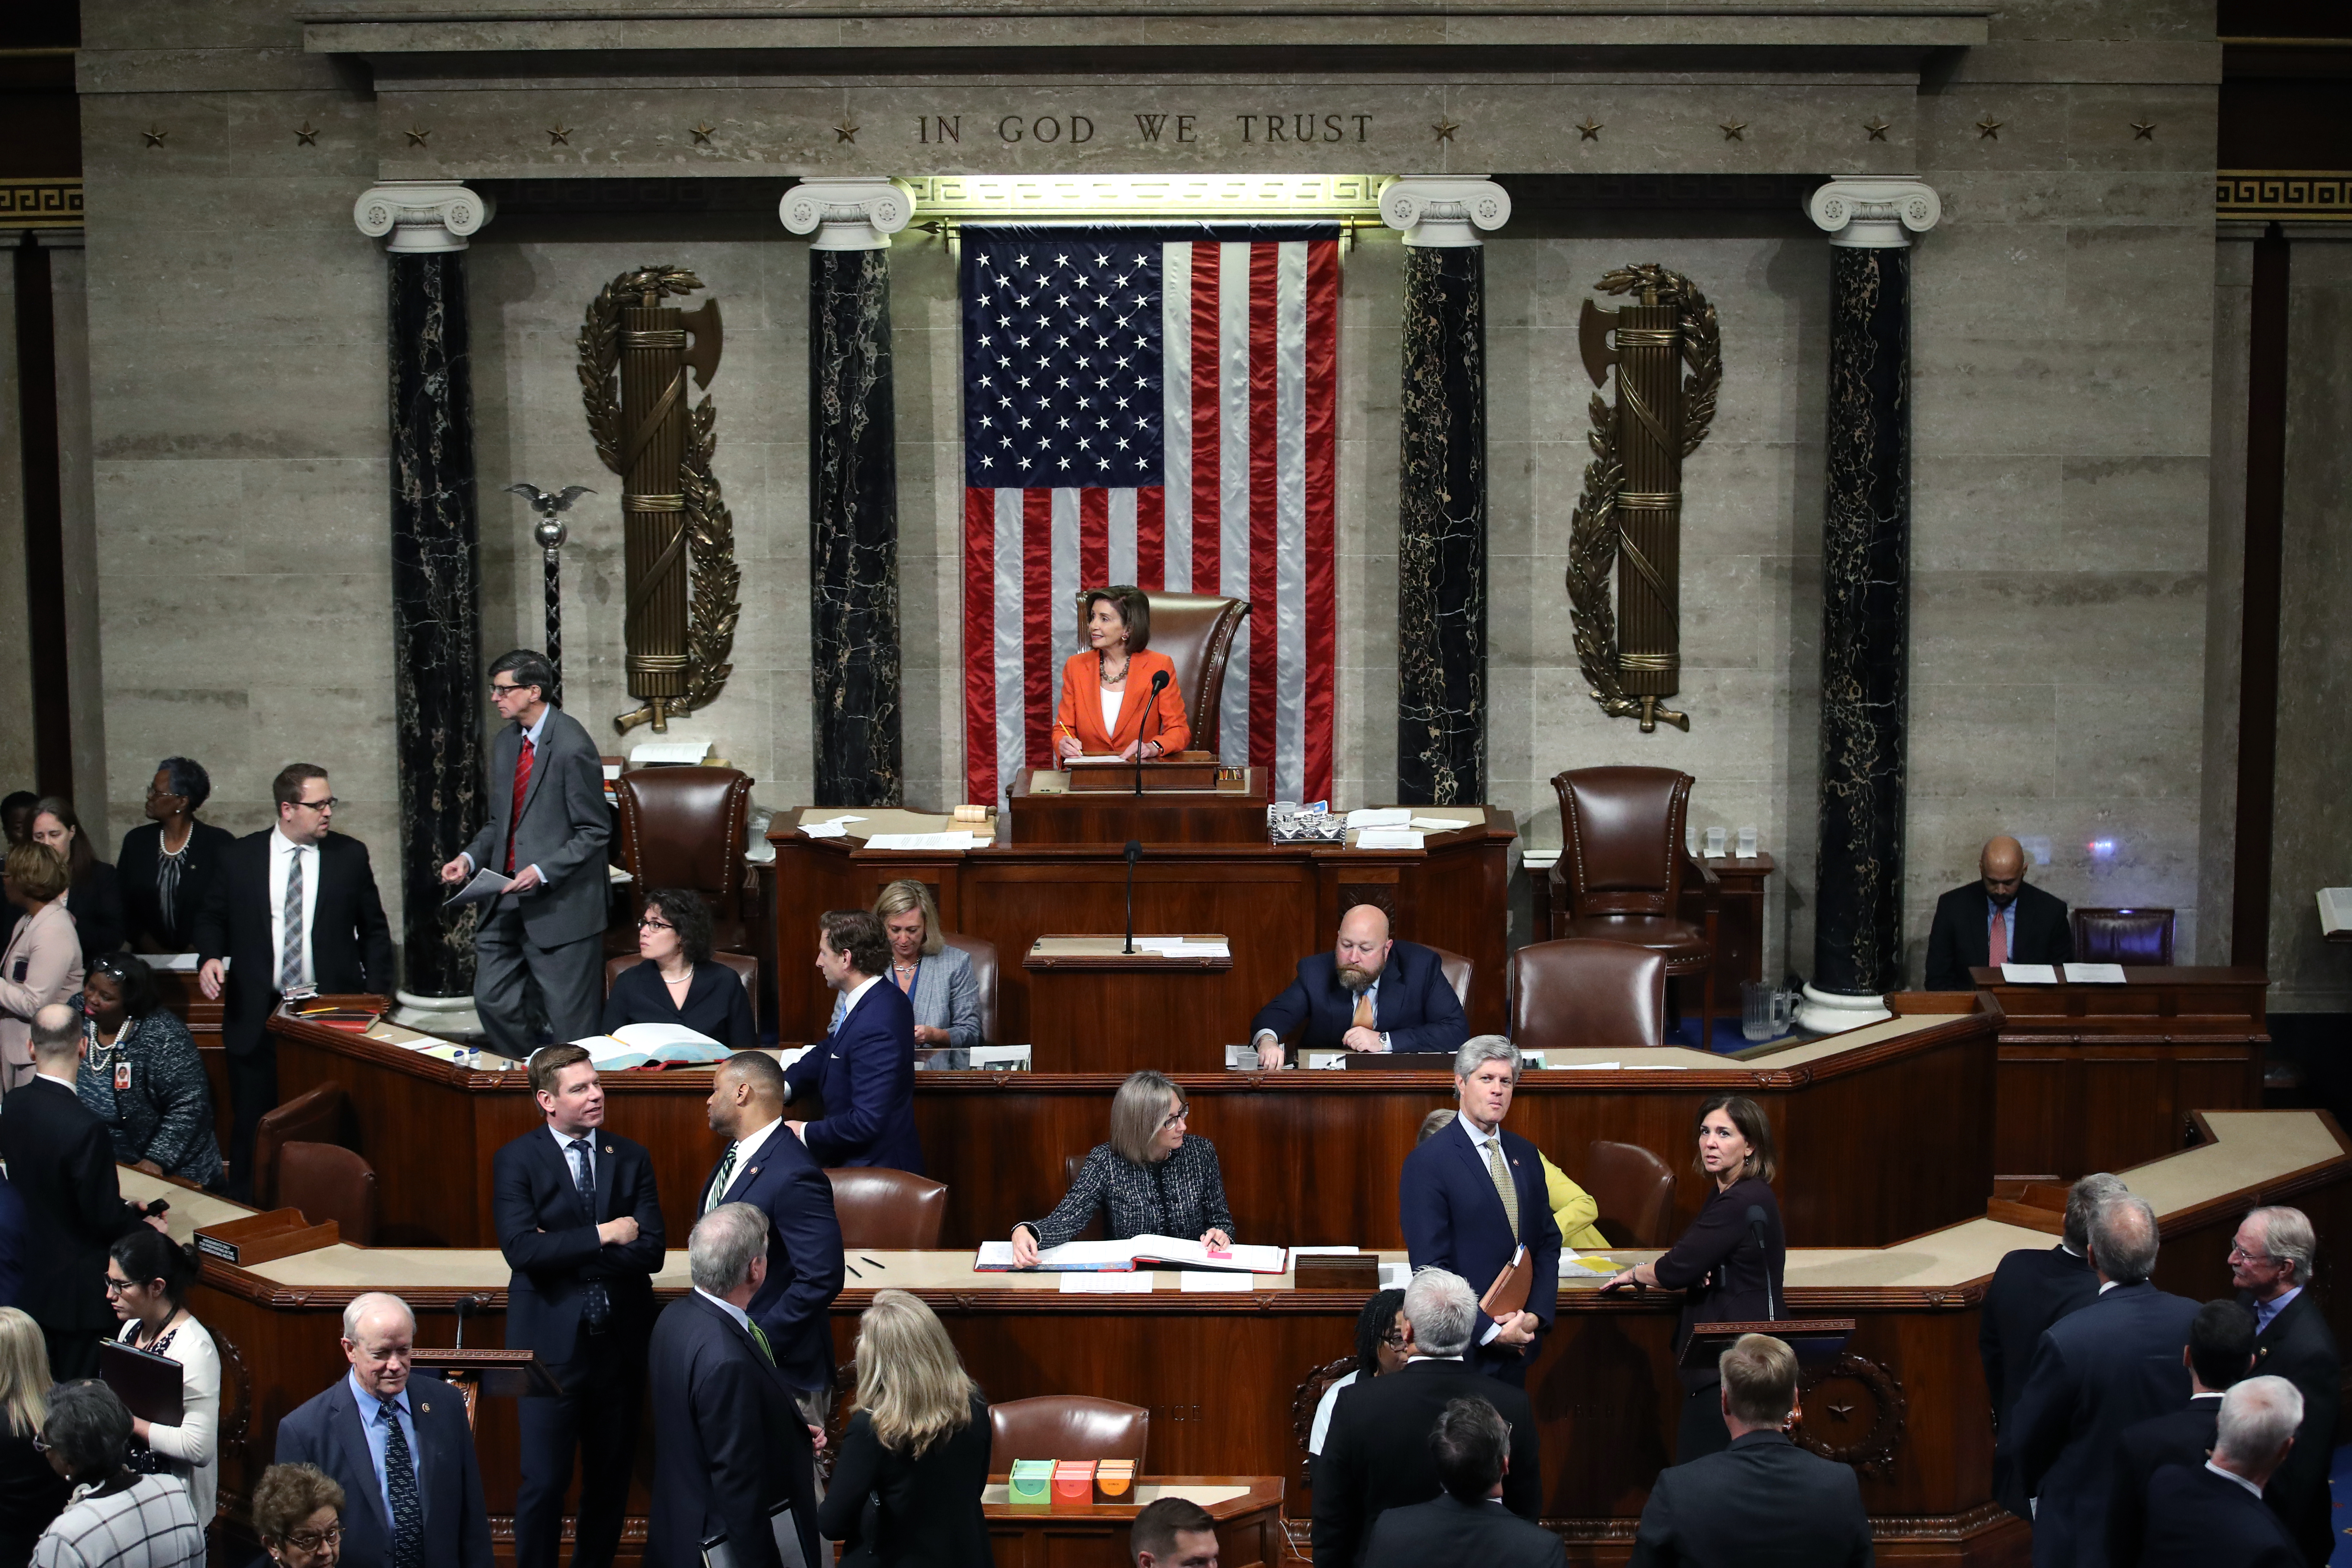 Speaker of the House, U.S. Rep. Nancy Pelosi presides over the U.S. House of Representatives as it votes on a resolution formalizing the impeachment inquiry centered on President Donald Trump on Thursday.